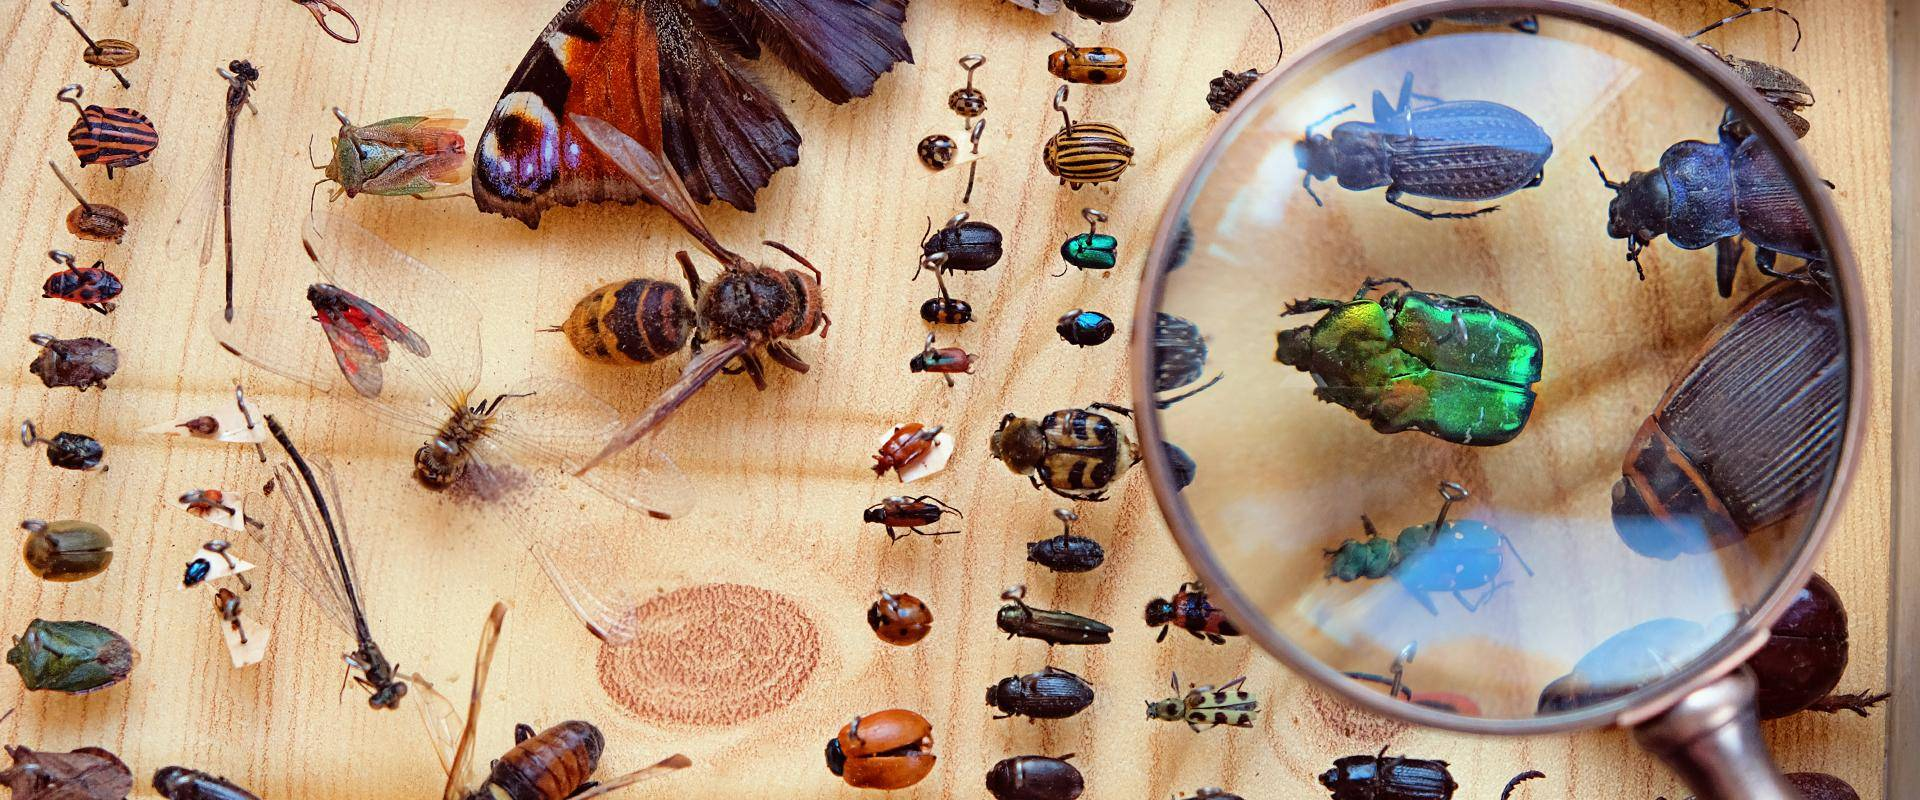 bugs on a table